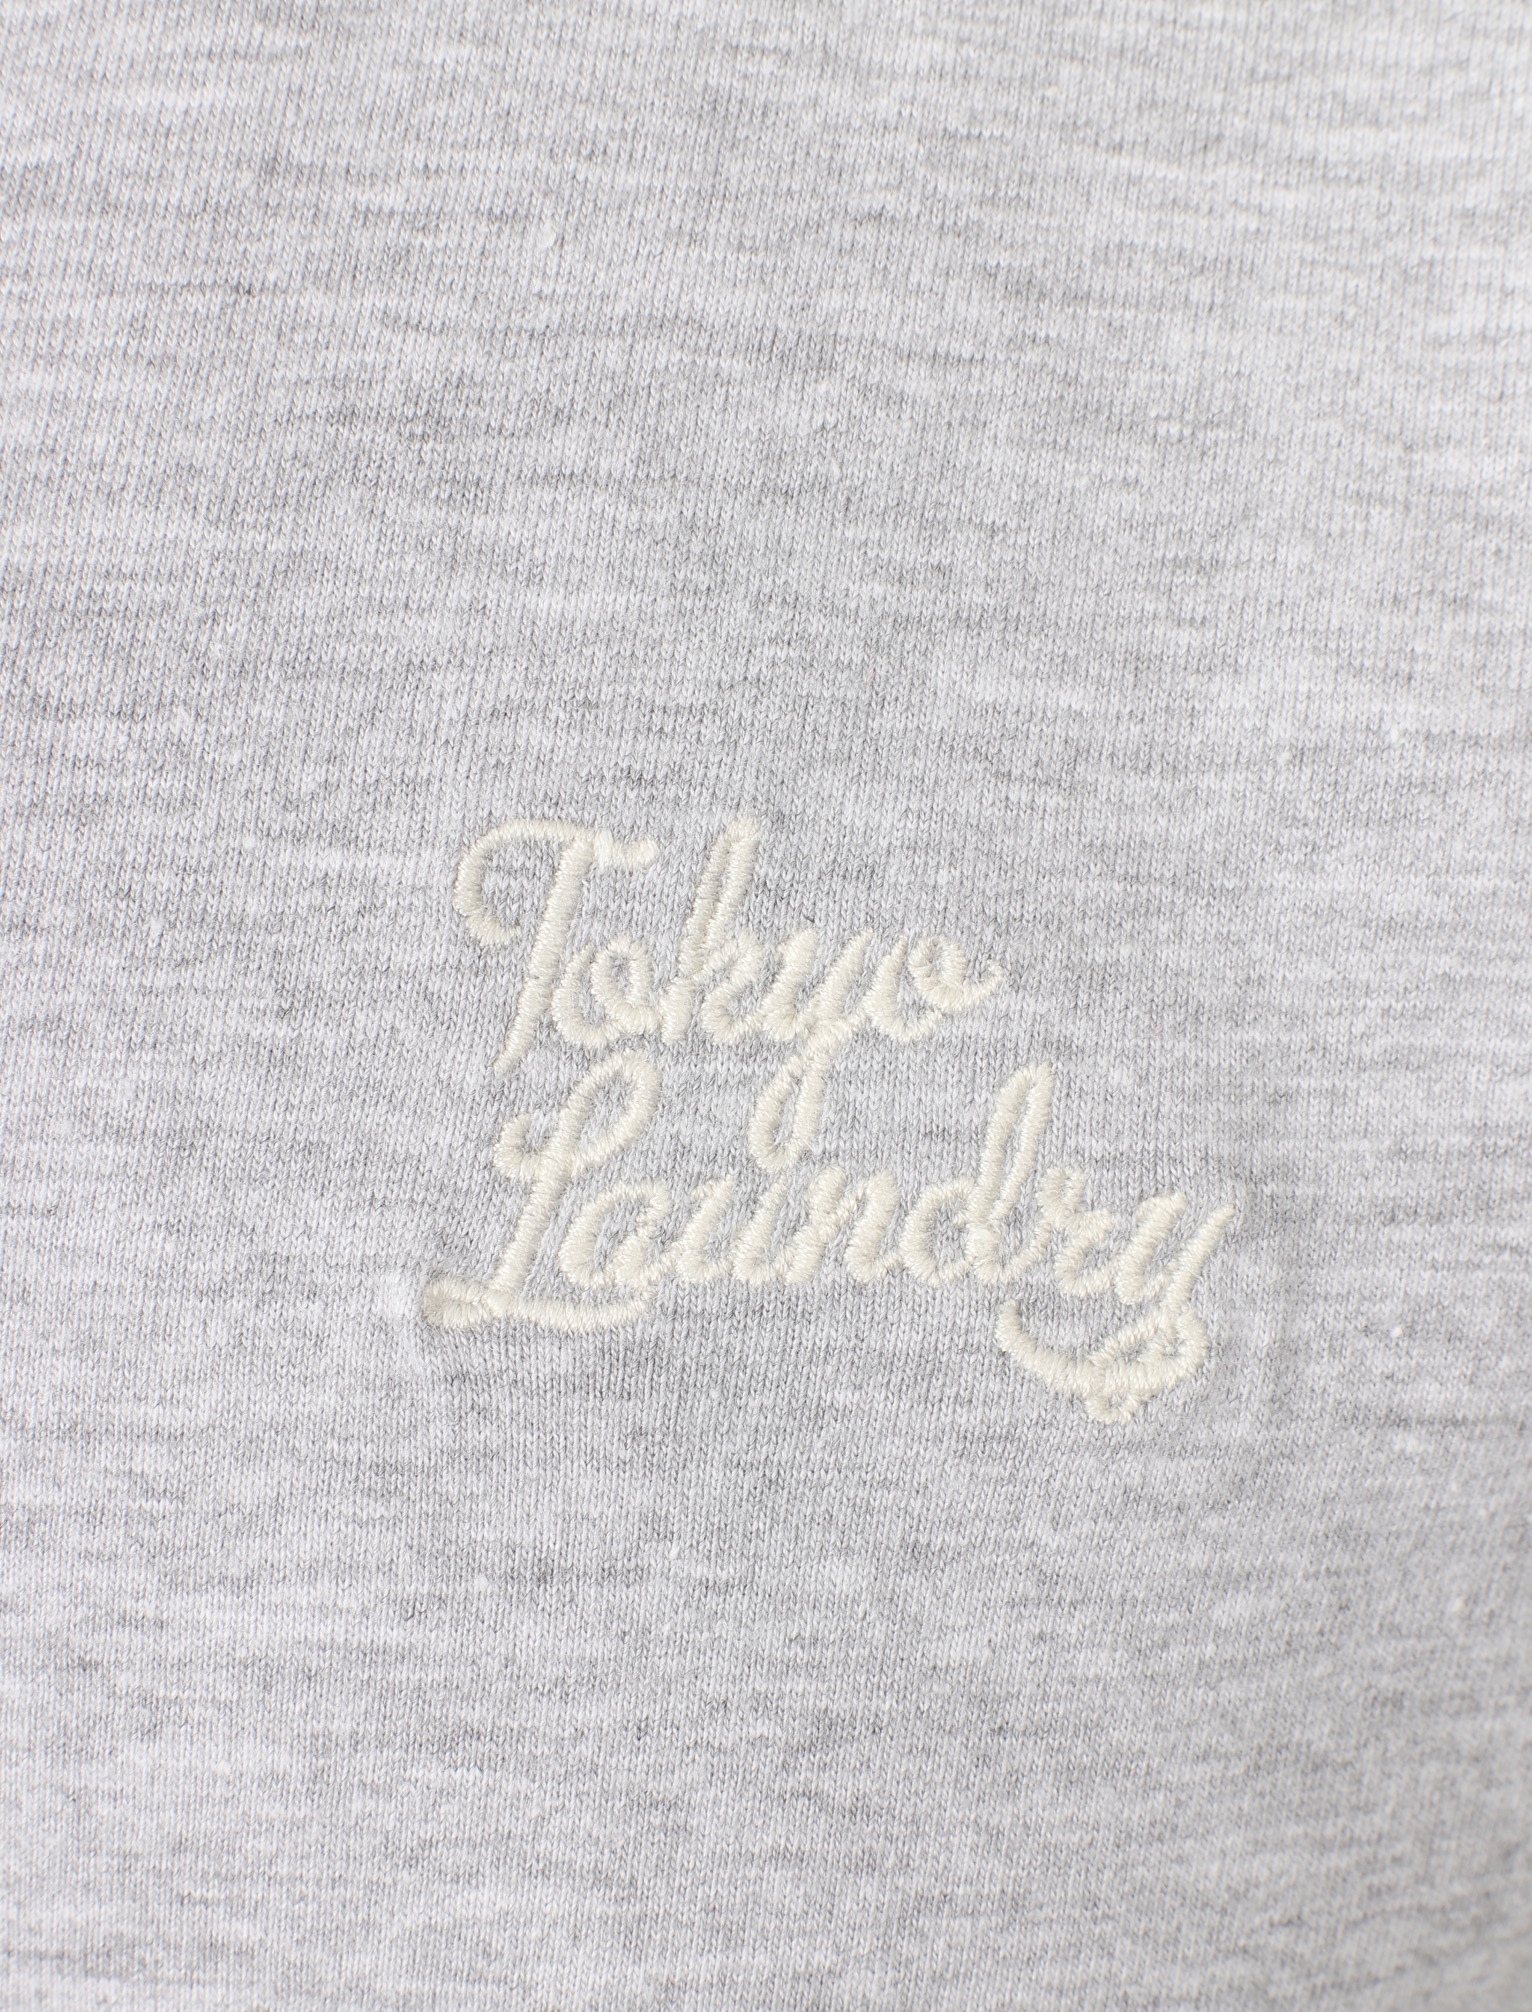 New-Mens-Tokyo-Laundry-Montecarlo-Crew-Neck-Cotton-Rich-Soft-T-Shirt-Size-S-XXL thumbnail 4